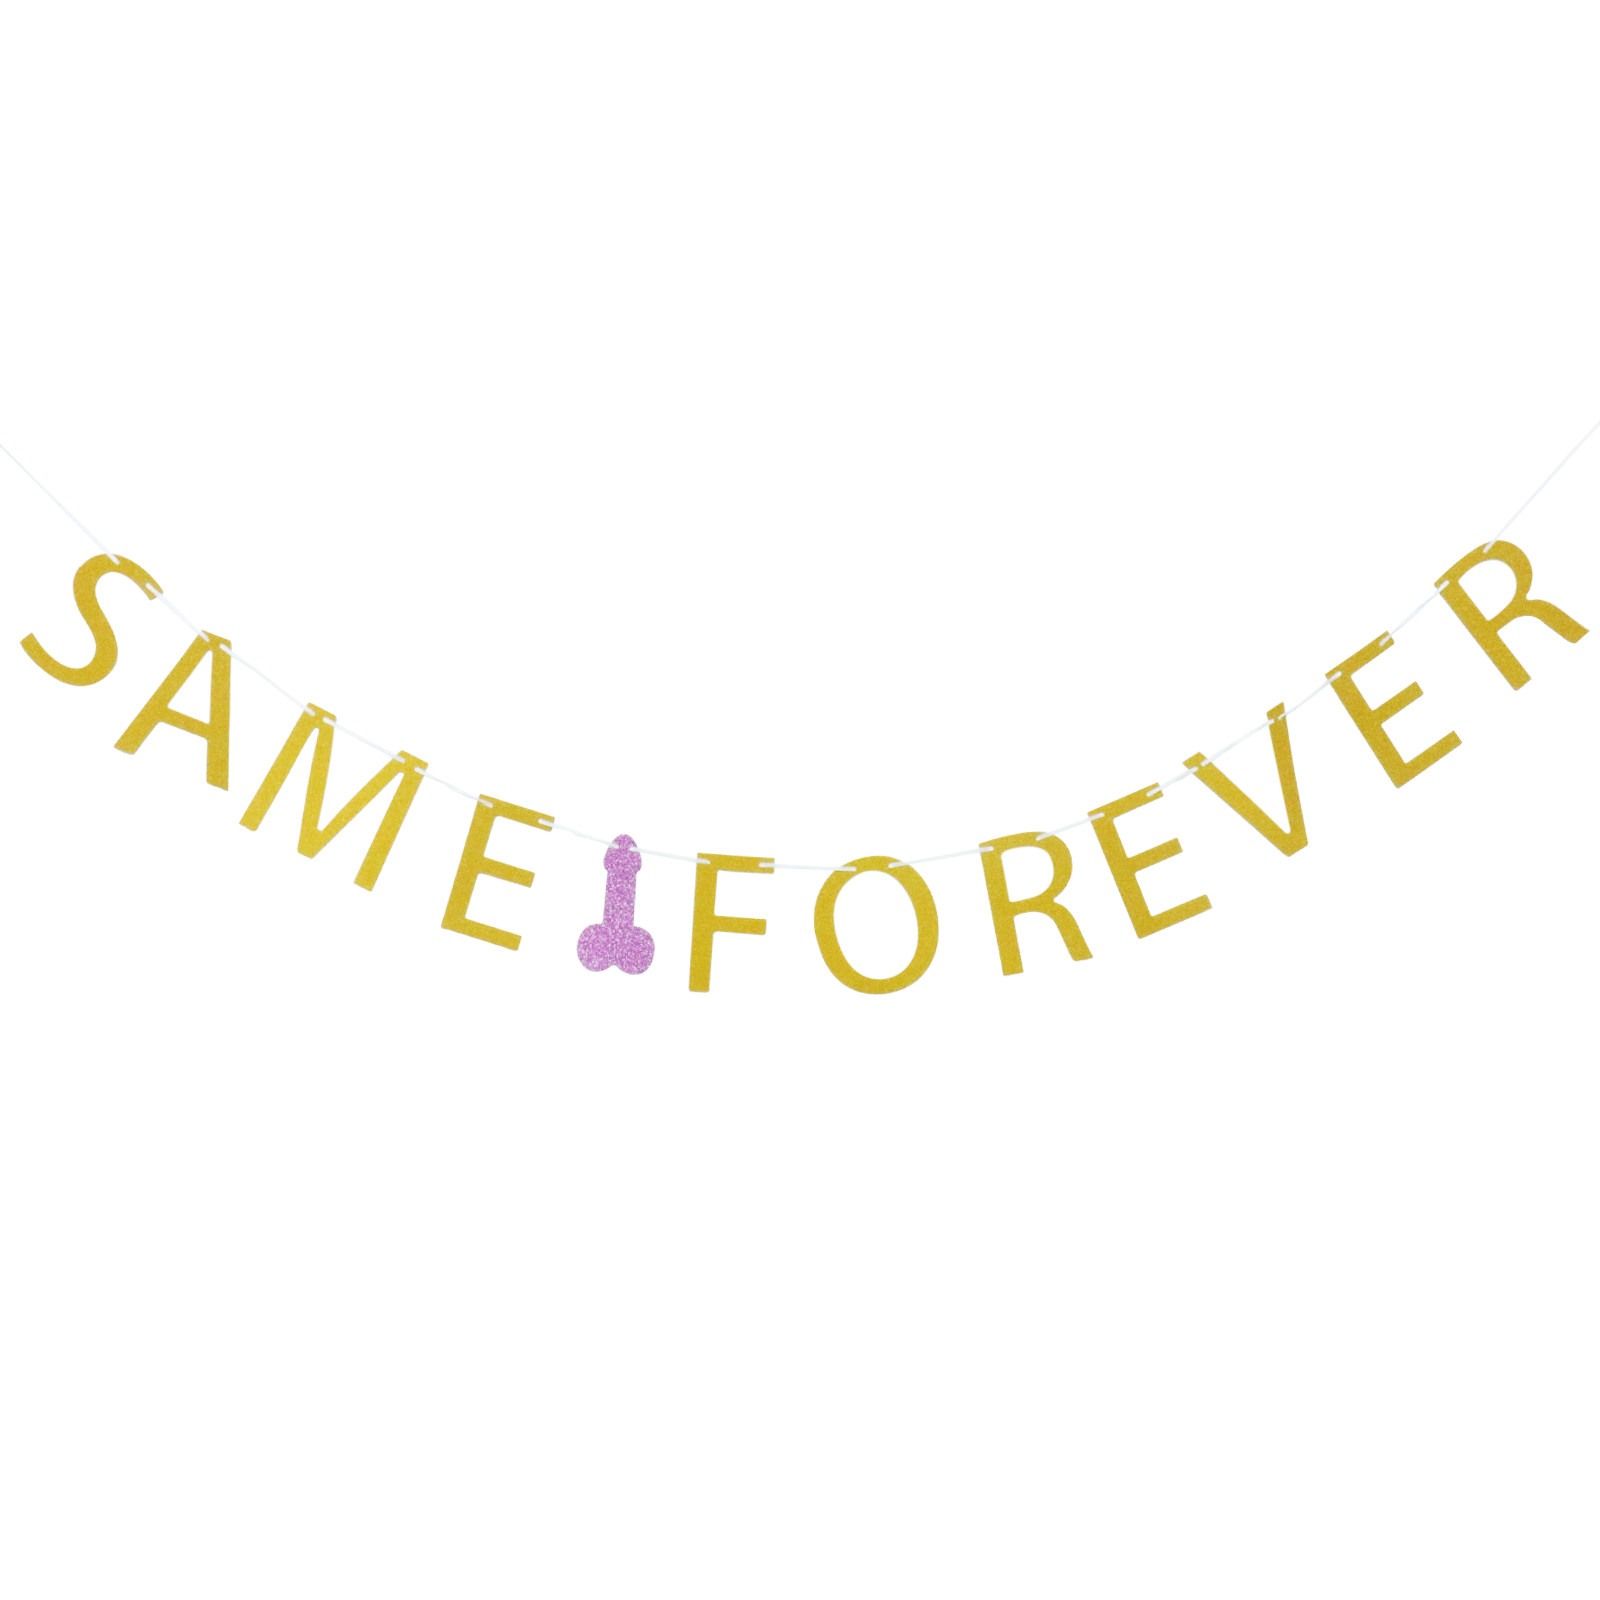 Bachelorette Party Gold Glitter Same Penis Forever Banner Garland Bunting Flags Girls Night Hen Party Decoration Supplies In Party Diy Decorations From Home Garden On Aliexpress